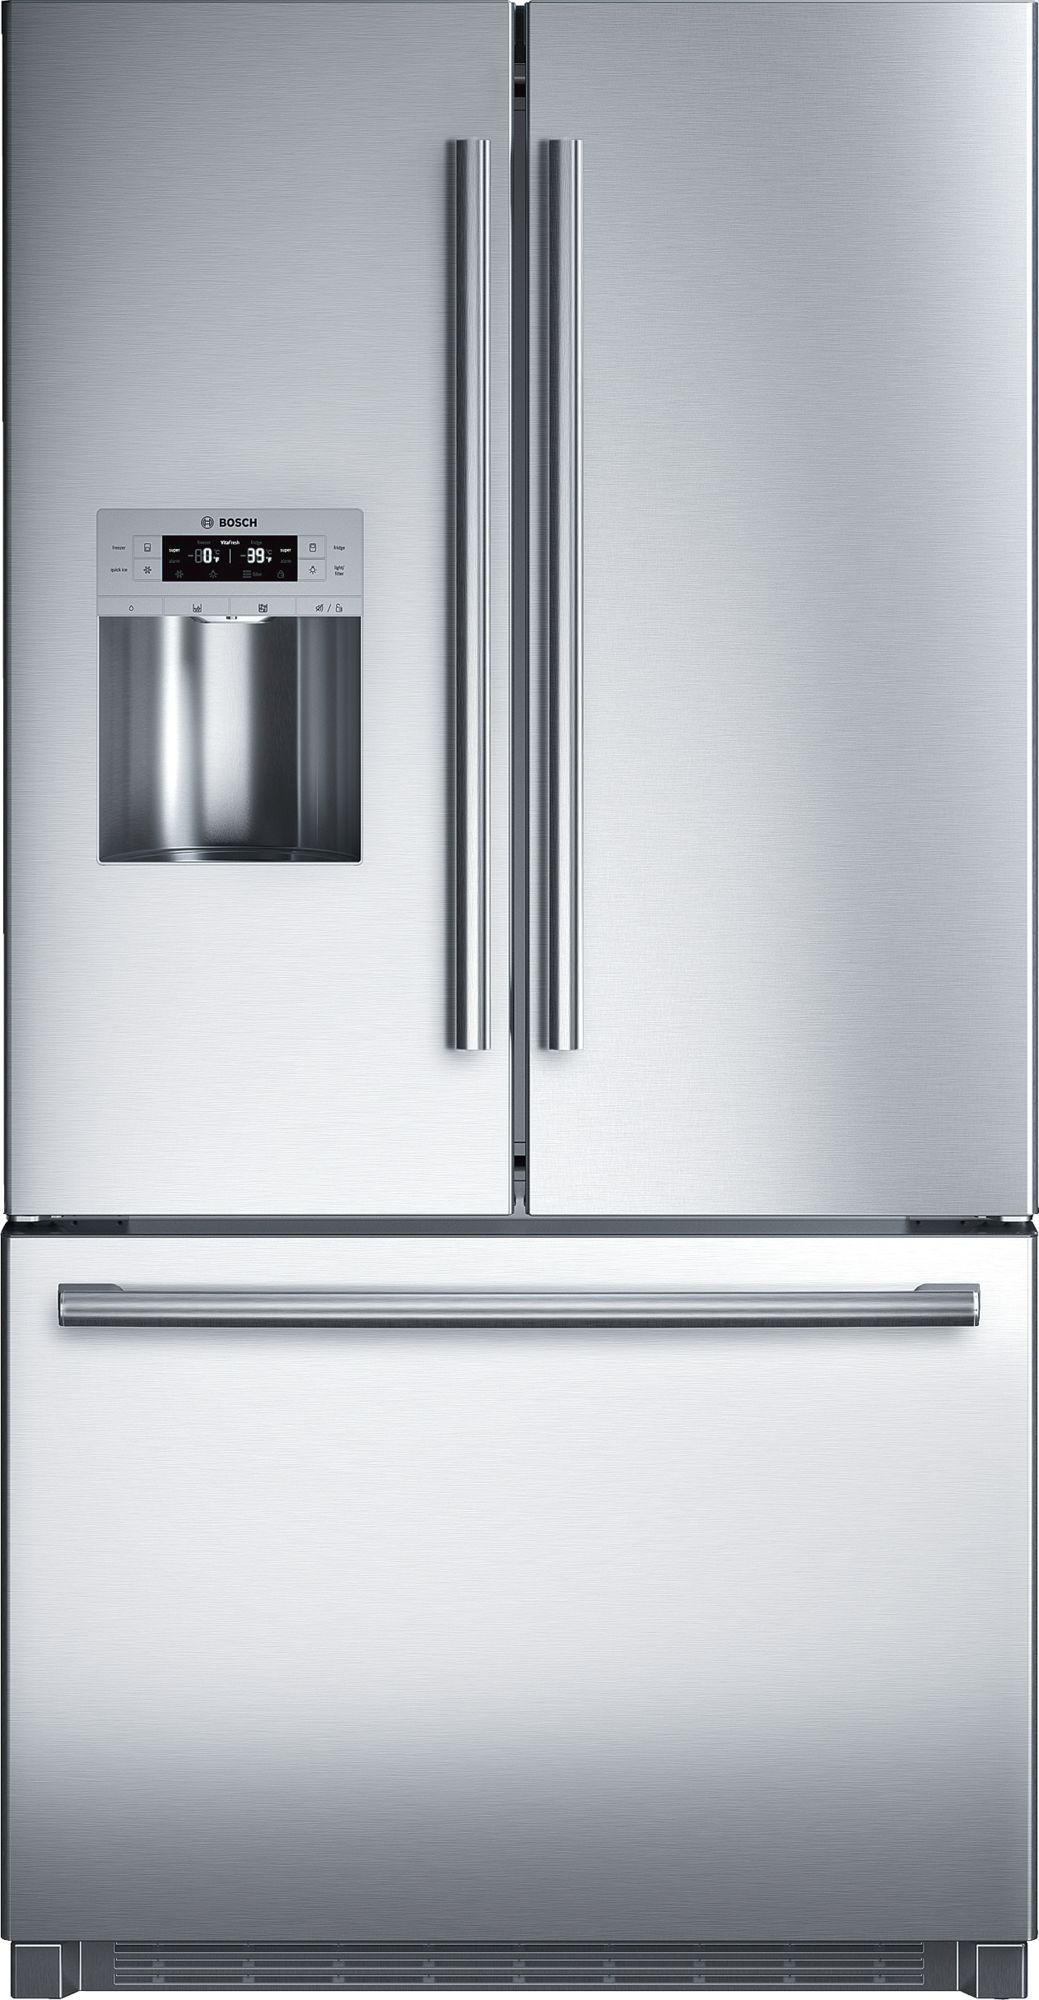 French door refrigerator ft french door refrigerator stainless steel b26ft70sns rubansaba